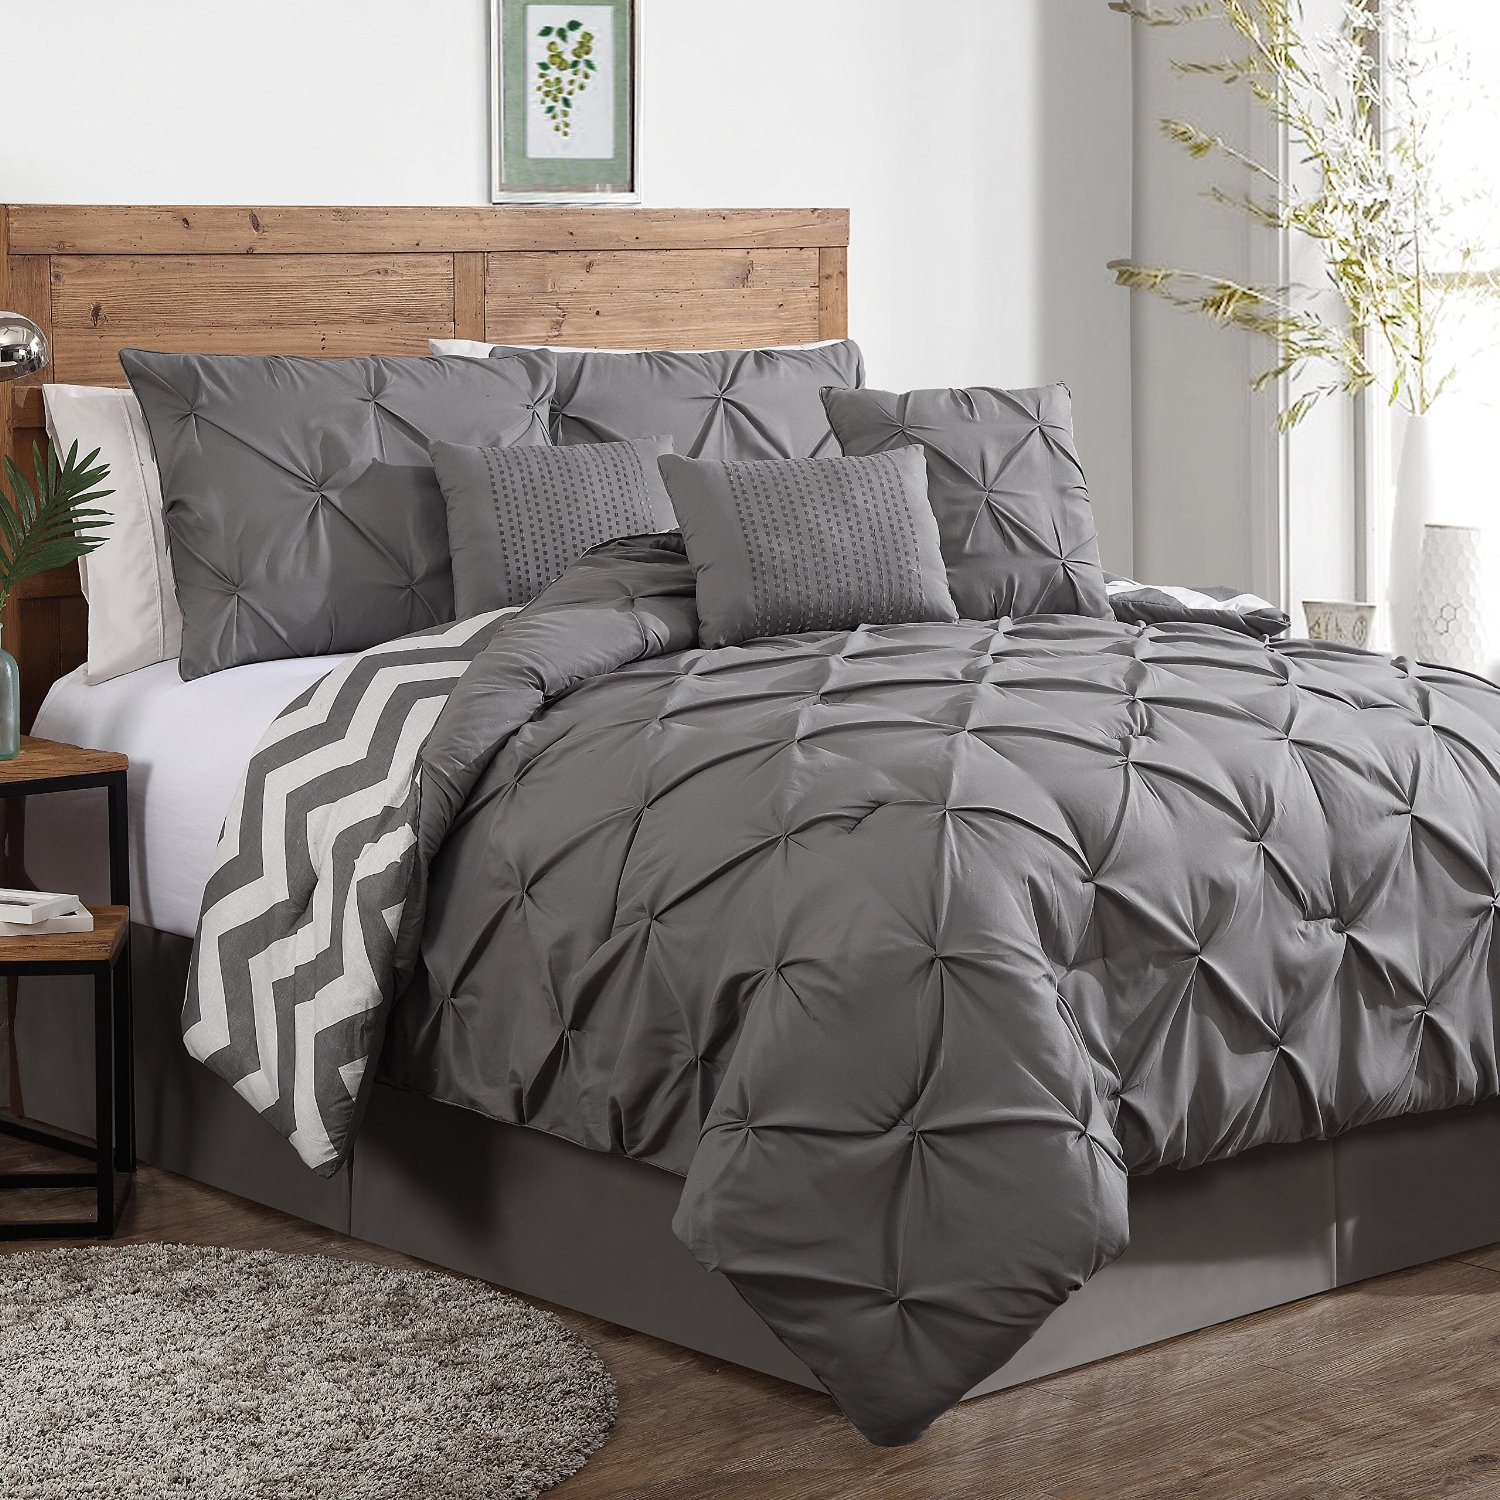 Image of: design of queen size bedding